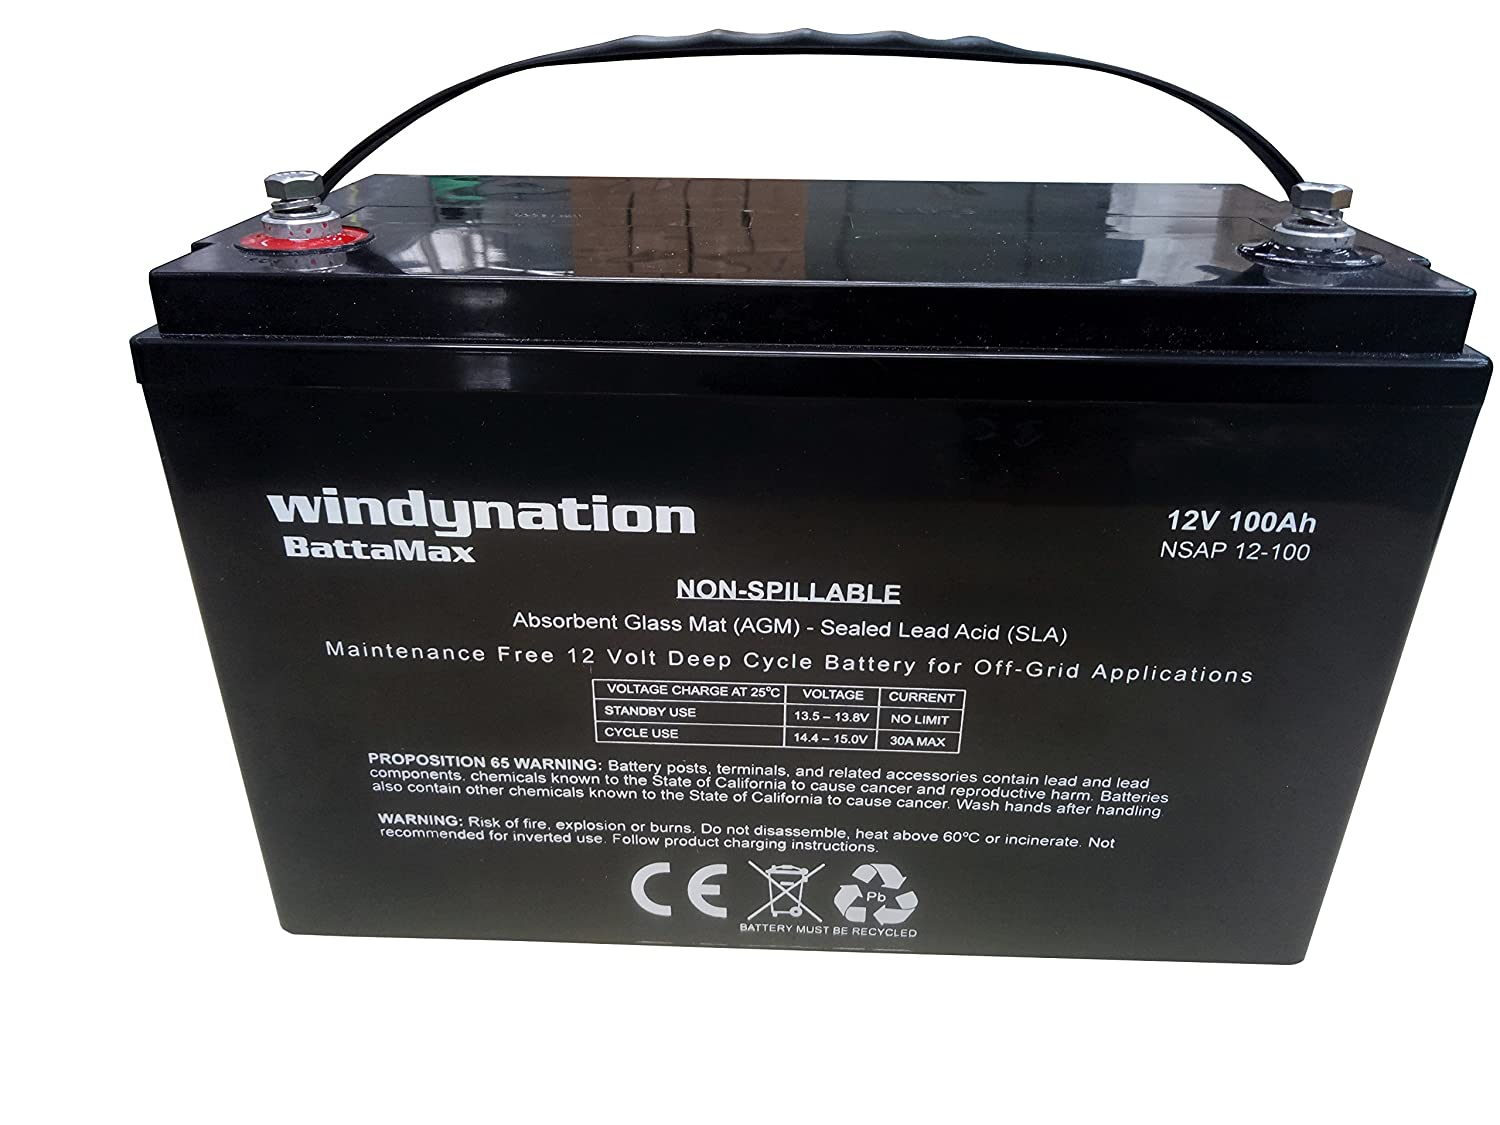 WindyNation 12V